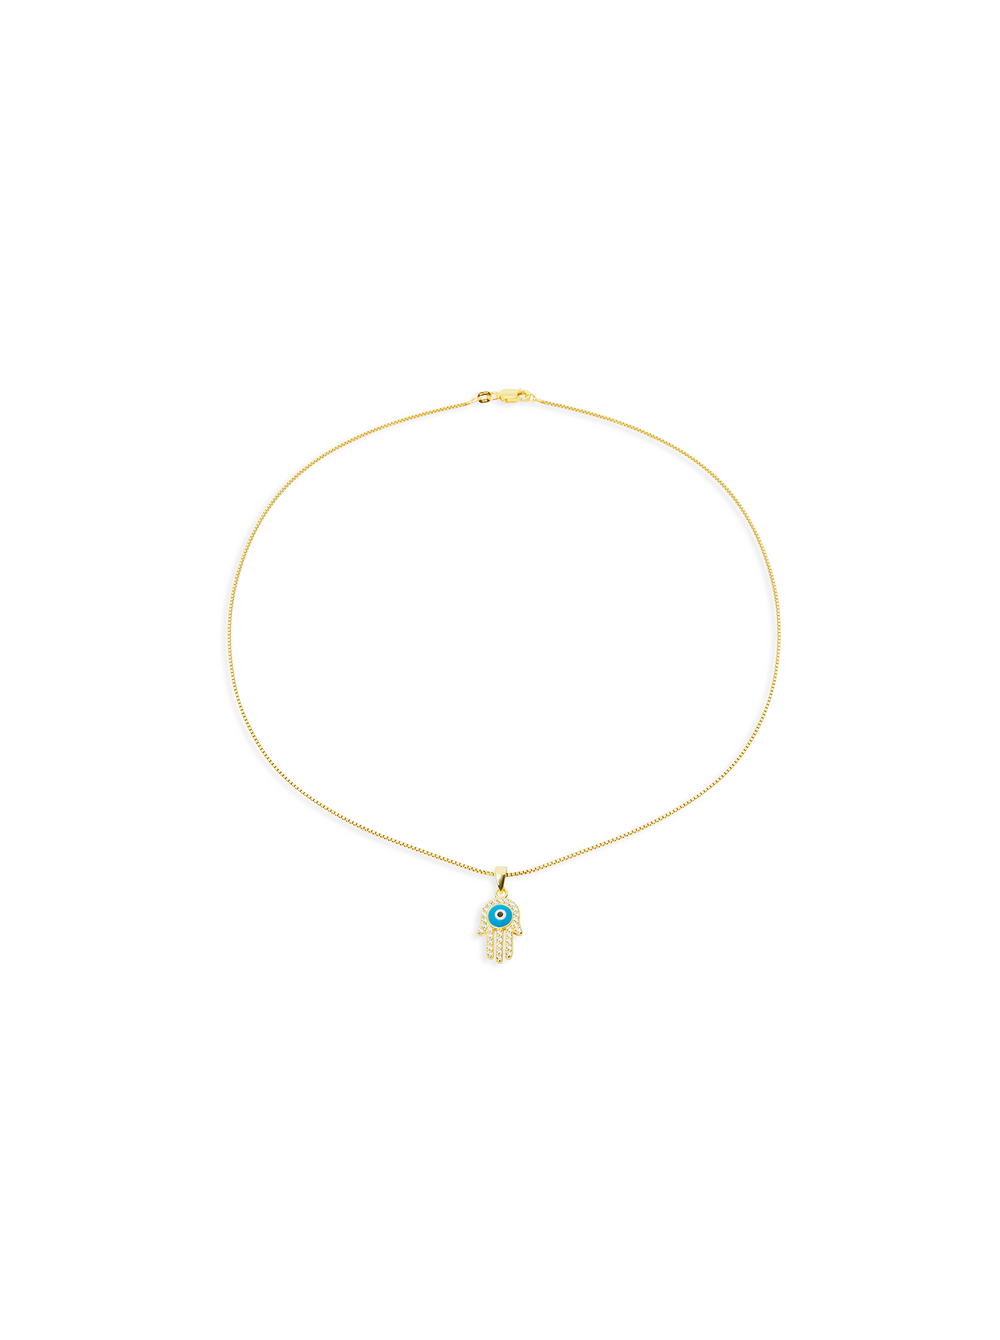 THE PAVE' EVIL EYE HAMSA NECKLACE